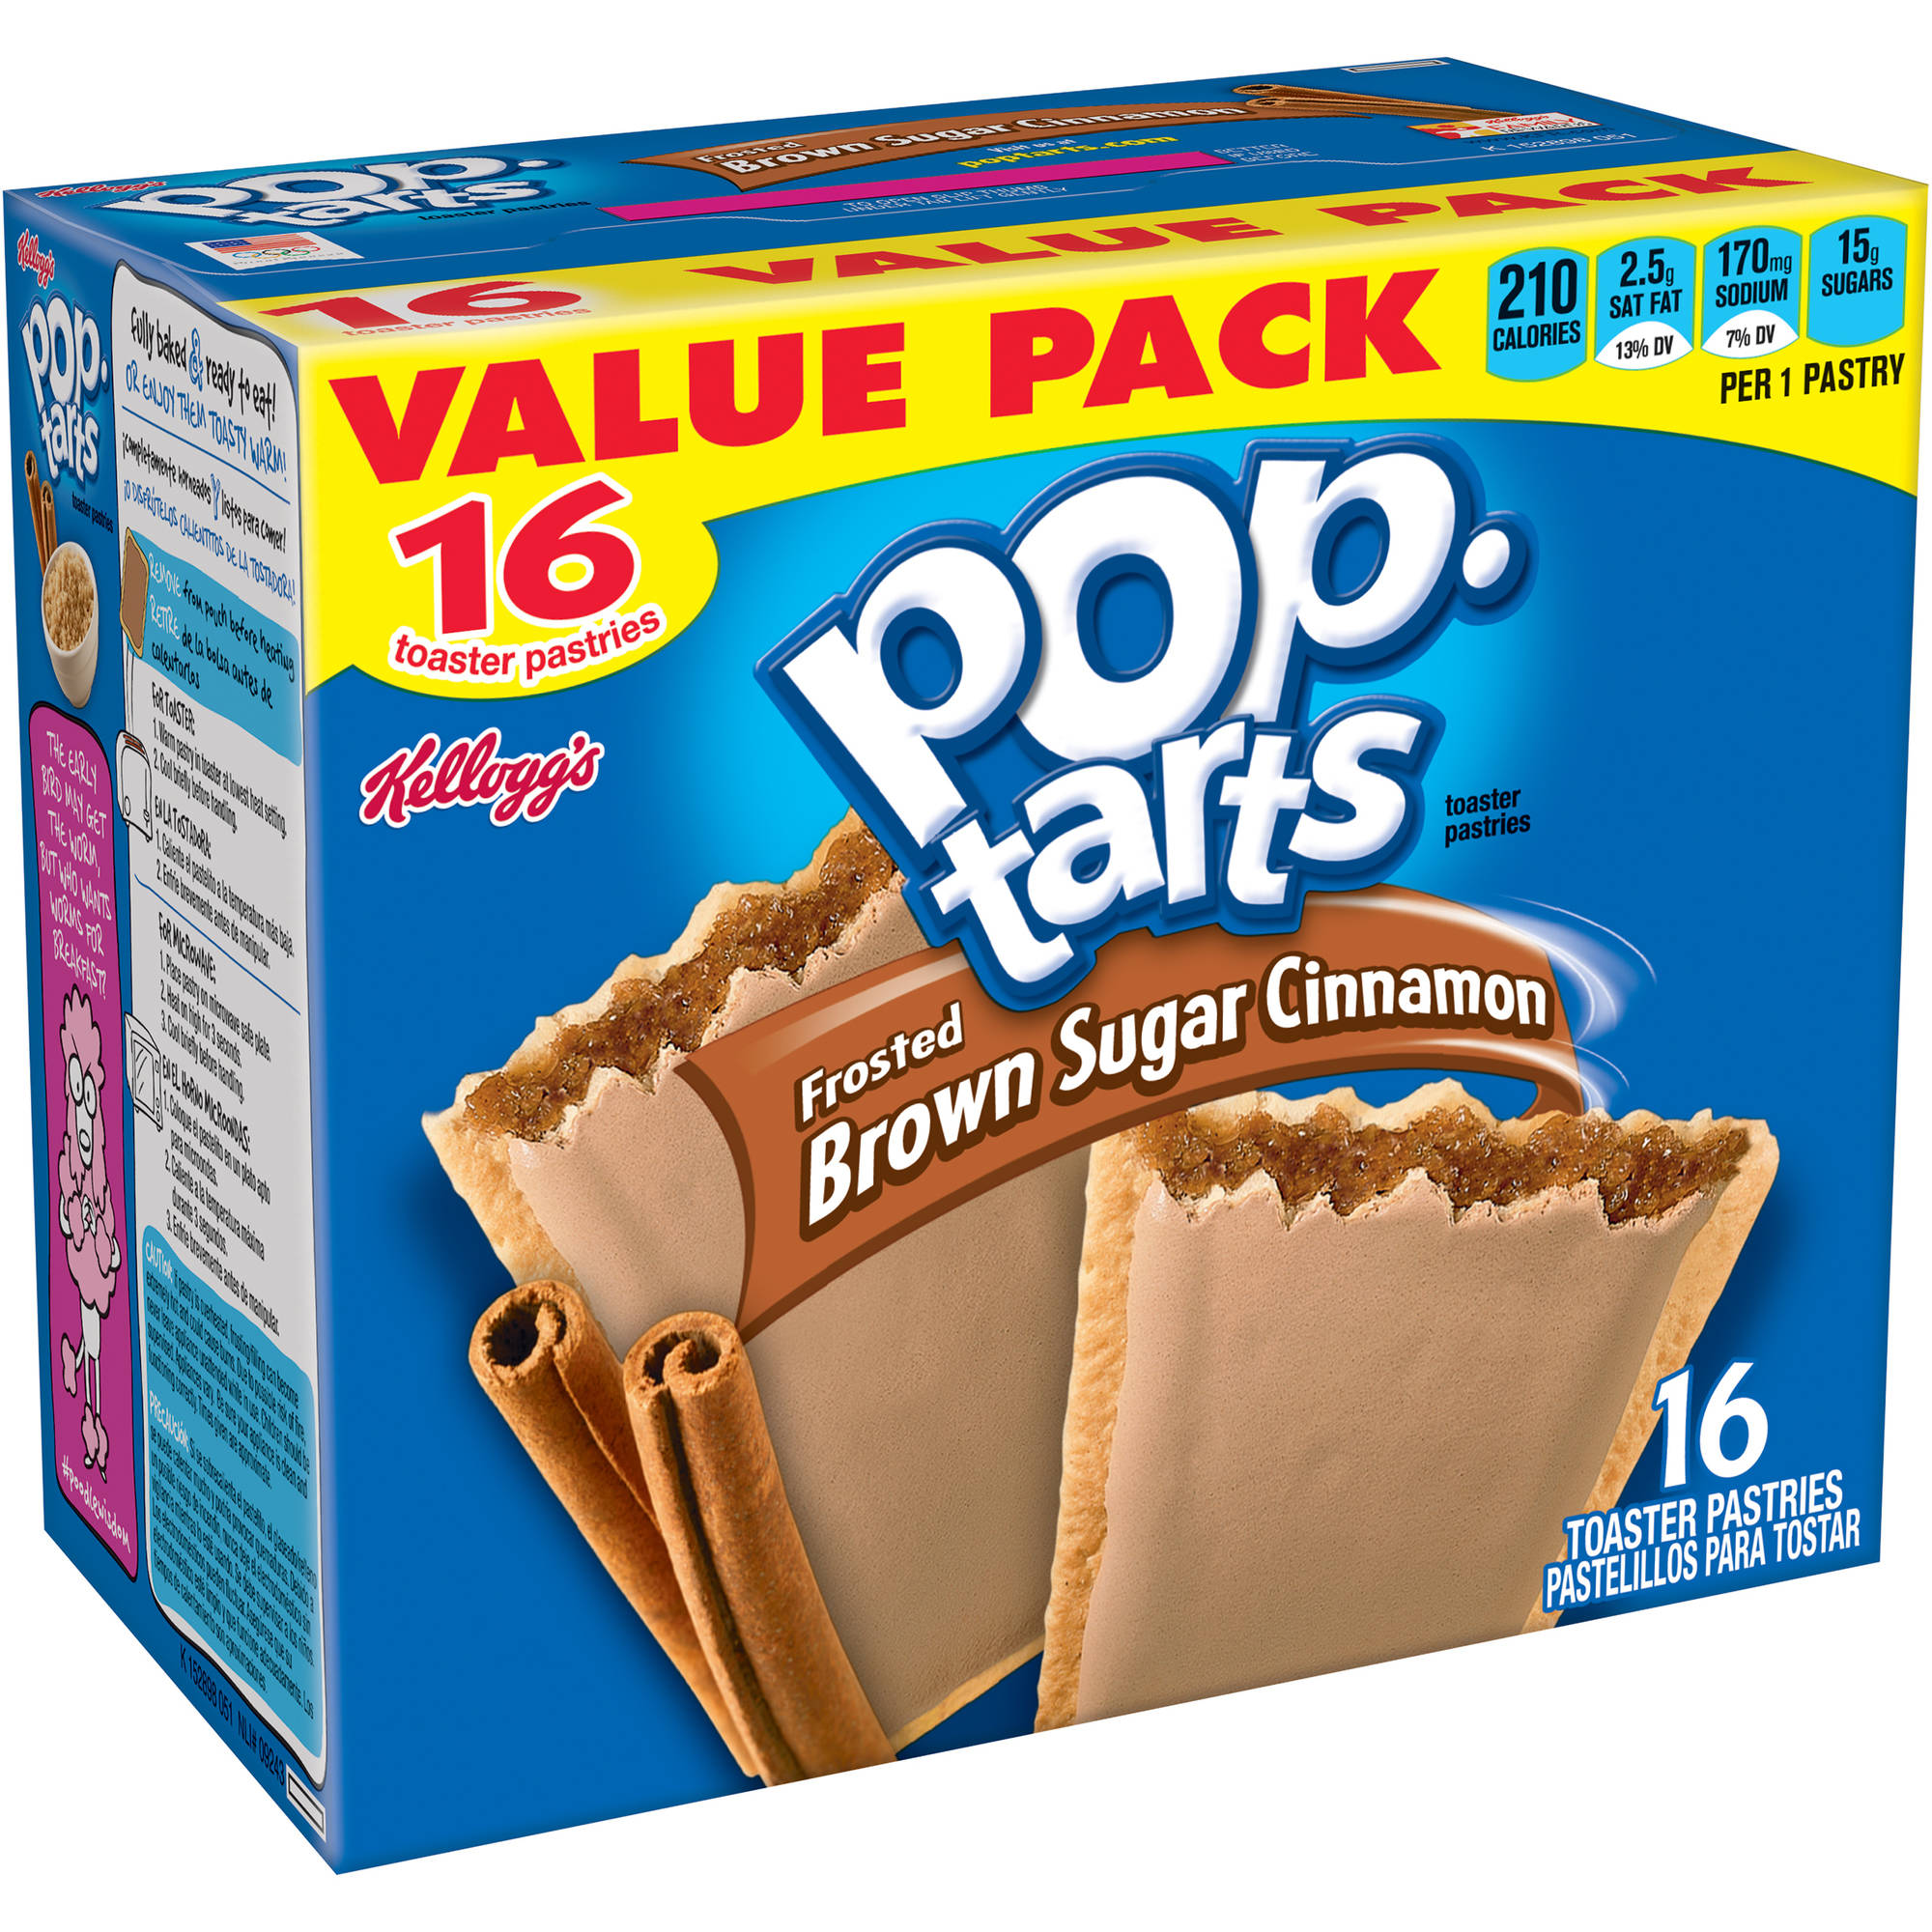 Kellogg's Brown Sugar Cinnamon Pop-Tarts Toaster Pastries, 16 count